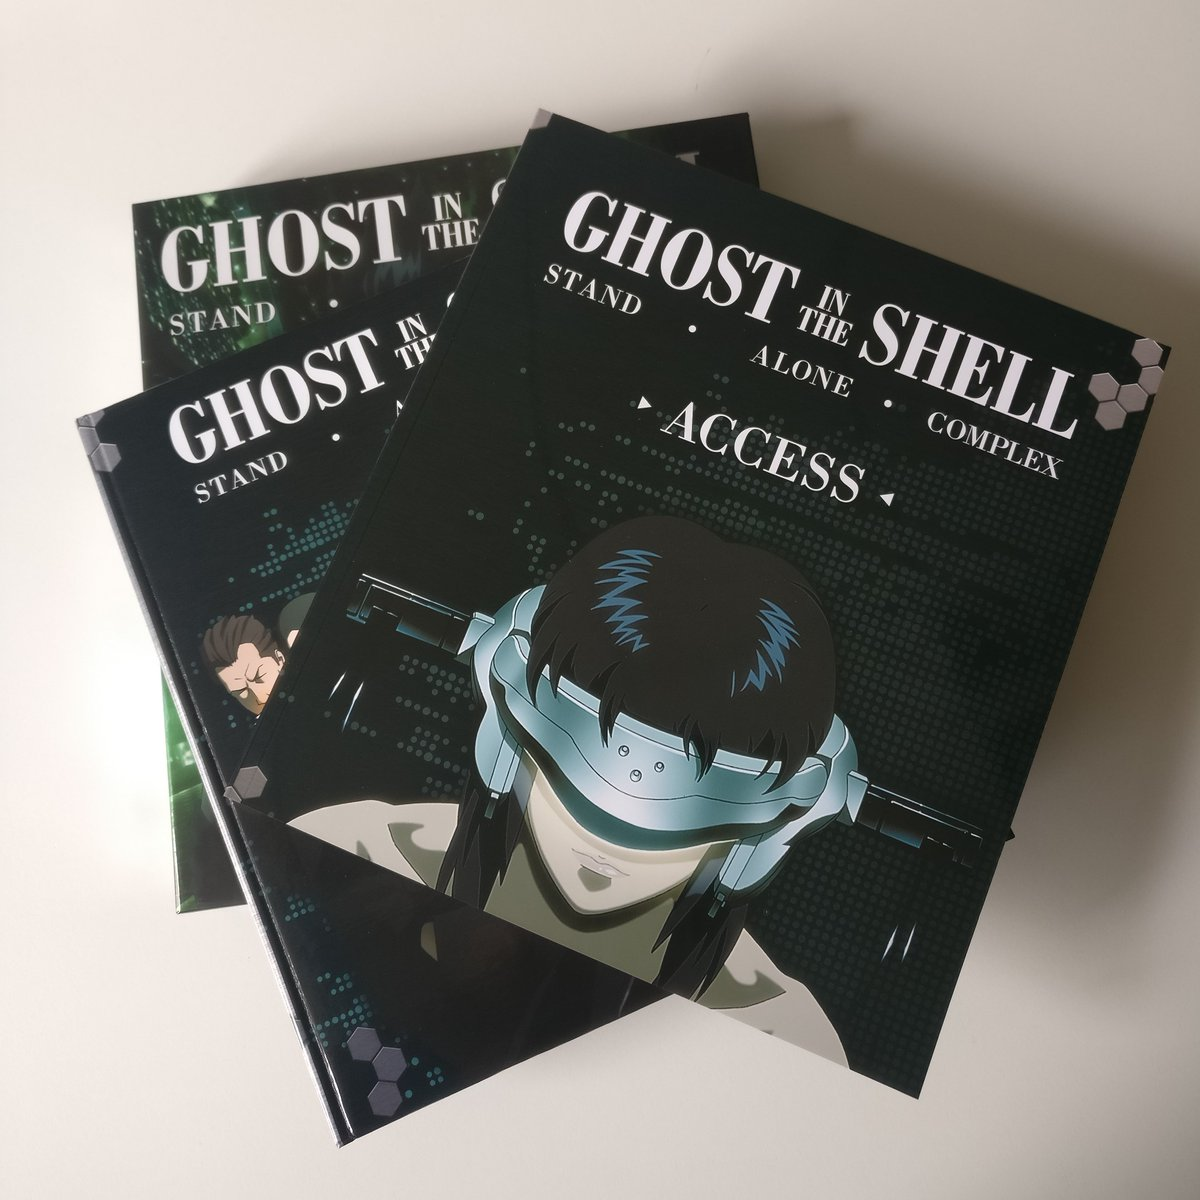 Manga Entertainment On Twitter It S Ghost In The Shell Stand Alone Complex On Deluxe Edition Blu Ray Https T Co 1kdsrixm86